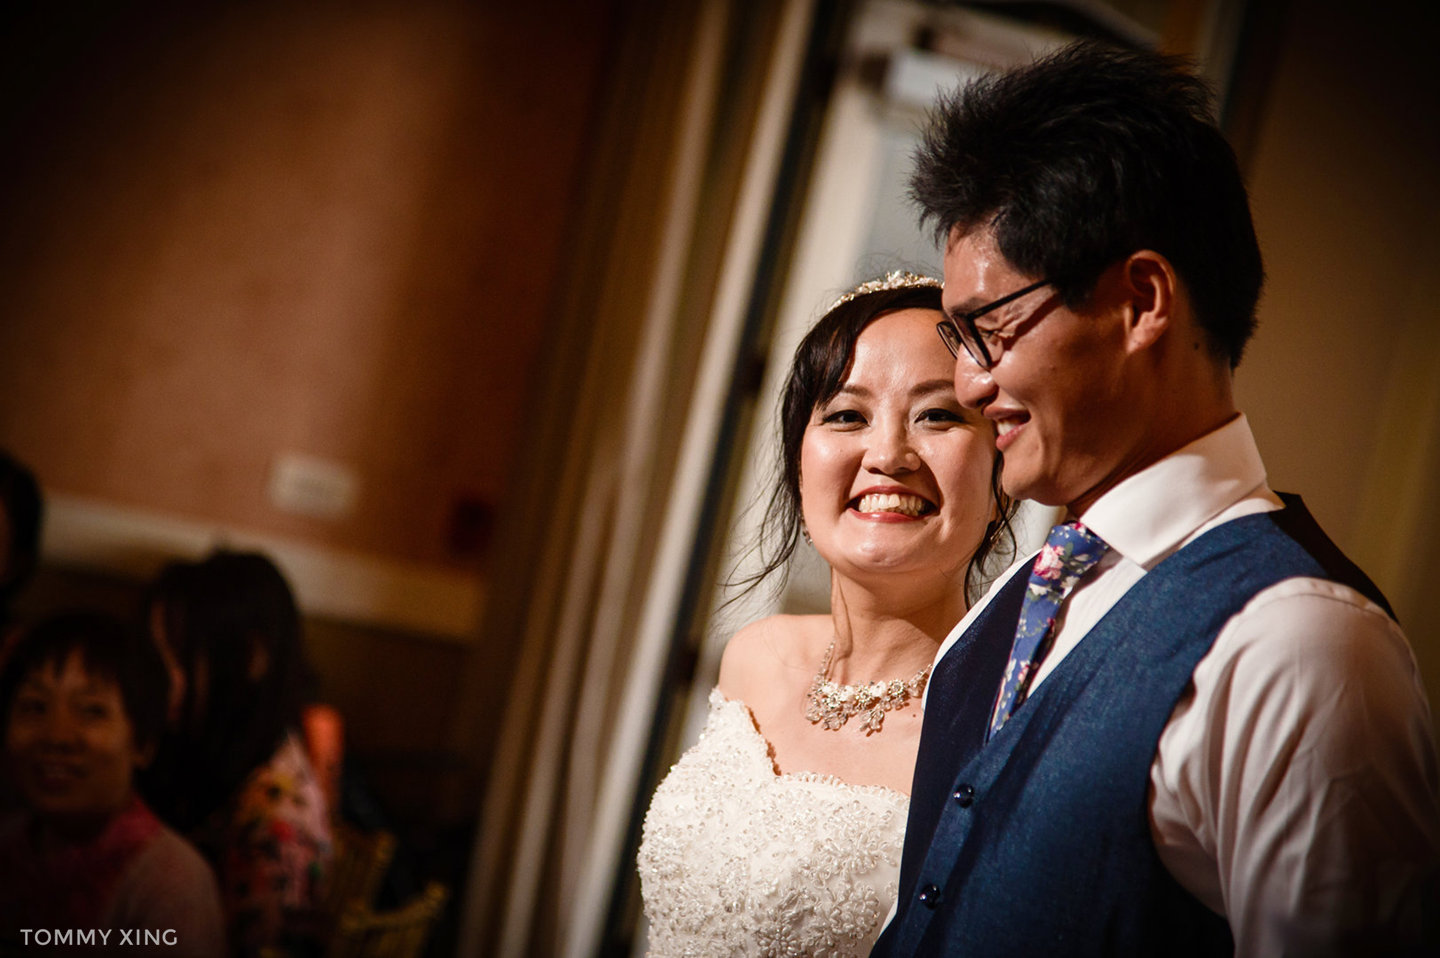 Paradise Point Resort Wedding Xiaolu & Bin San Diego 圣地亚哥婚礼摄影跟拍 Tommy Xing Photography 洛杉矶婚礼婚纱照摄影师 241.jpg